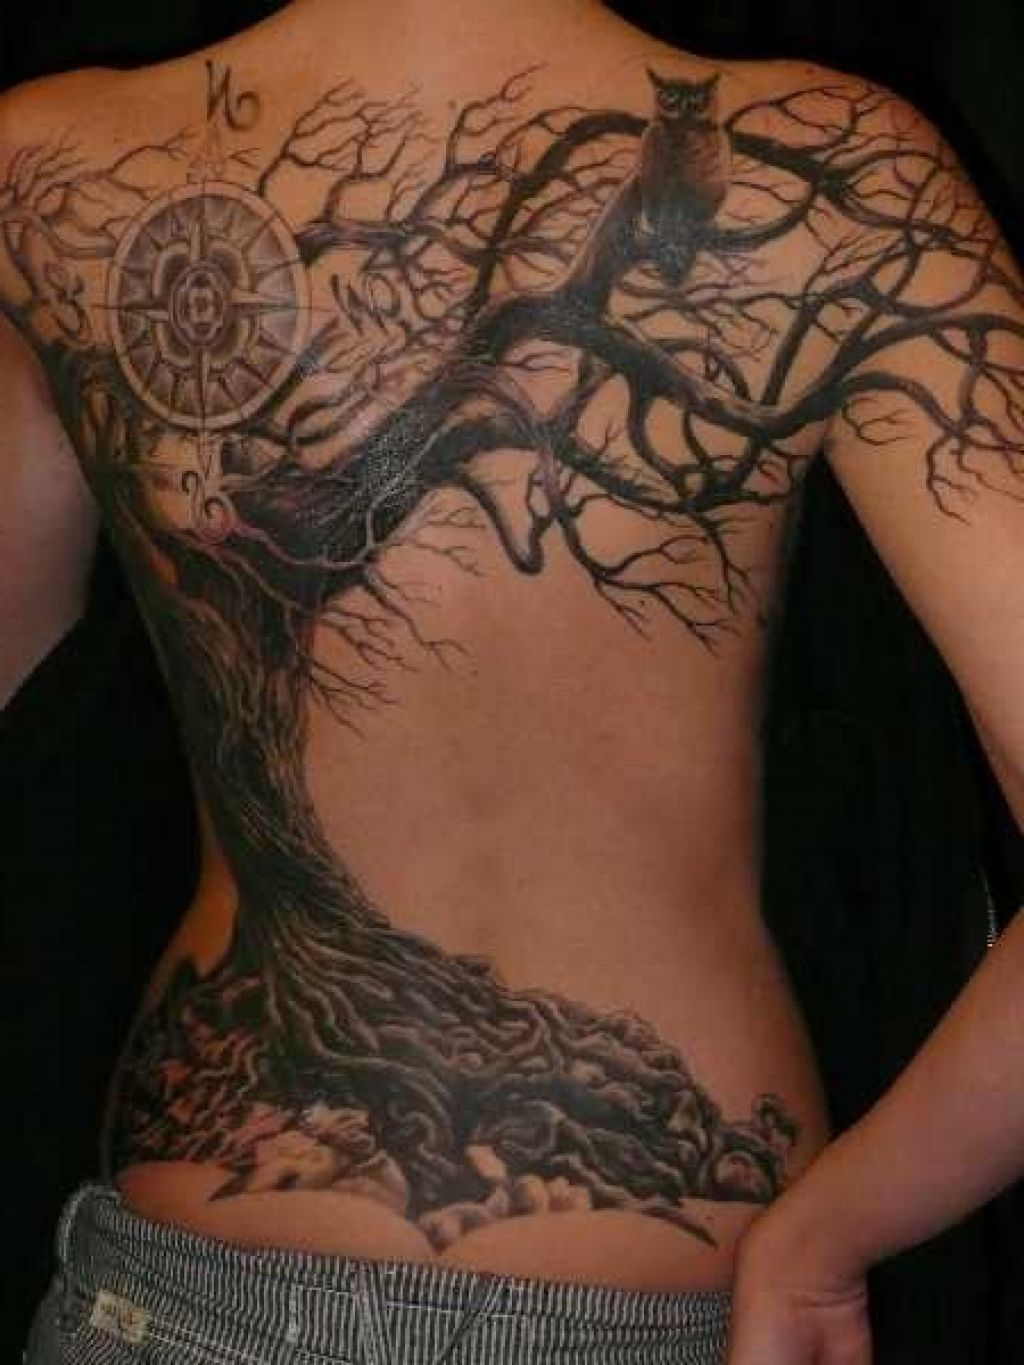 amazing dead tree tattoo design tattoo idea pinterest dead tree tattoo tree tattoo. Black Bedroom Furniture Sets. Home Design Ideas